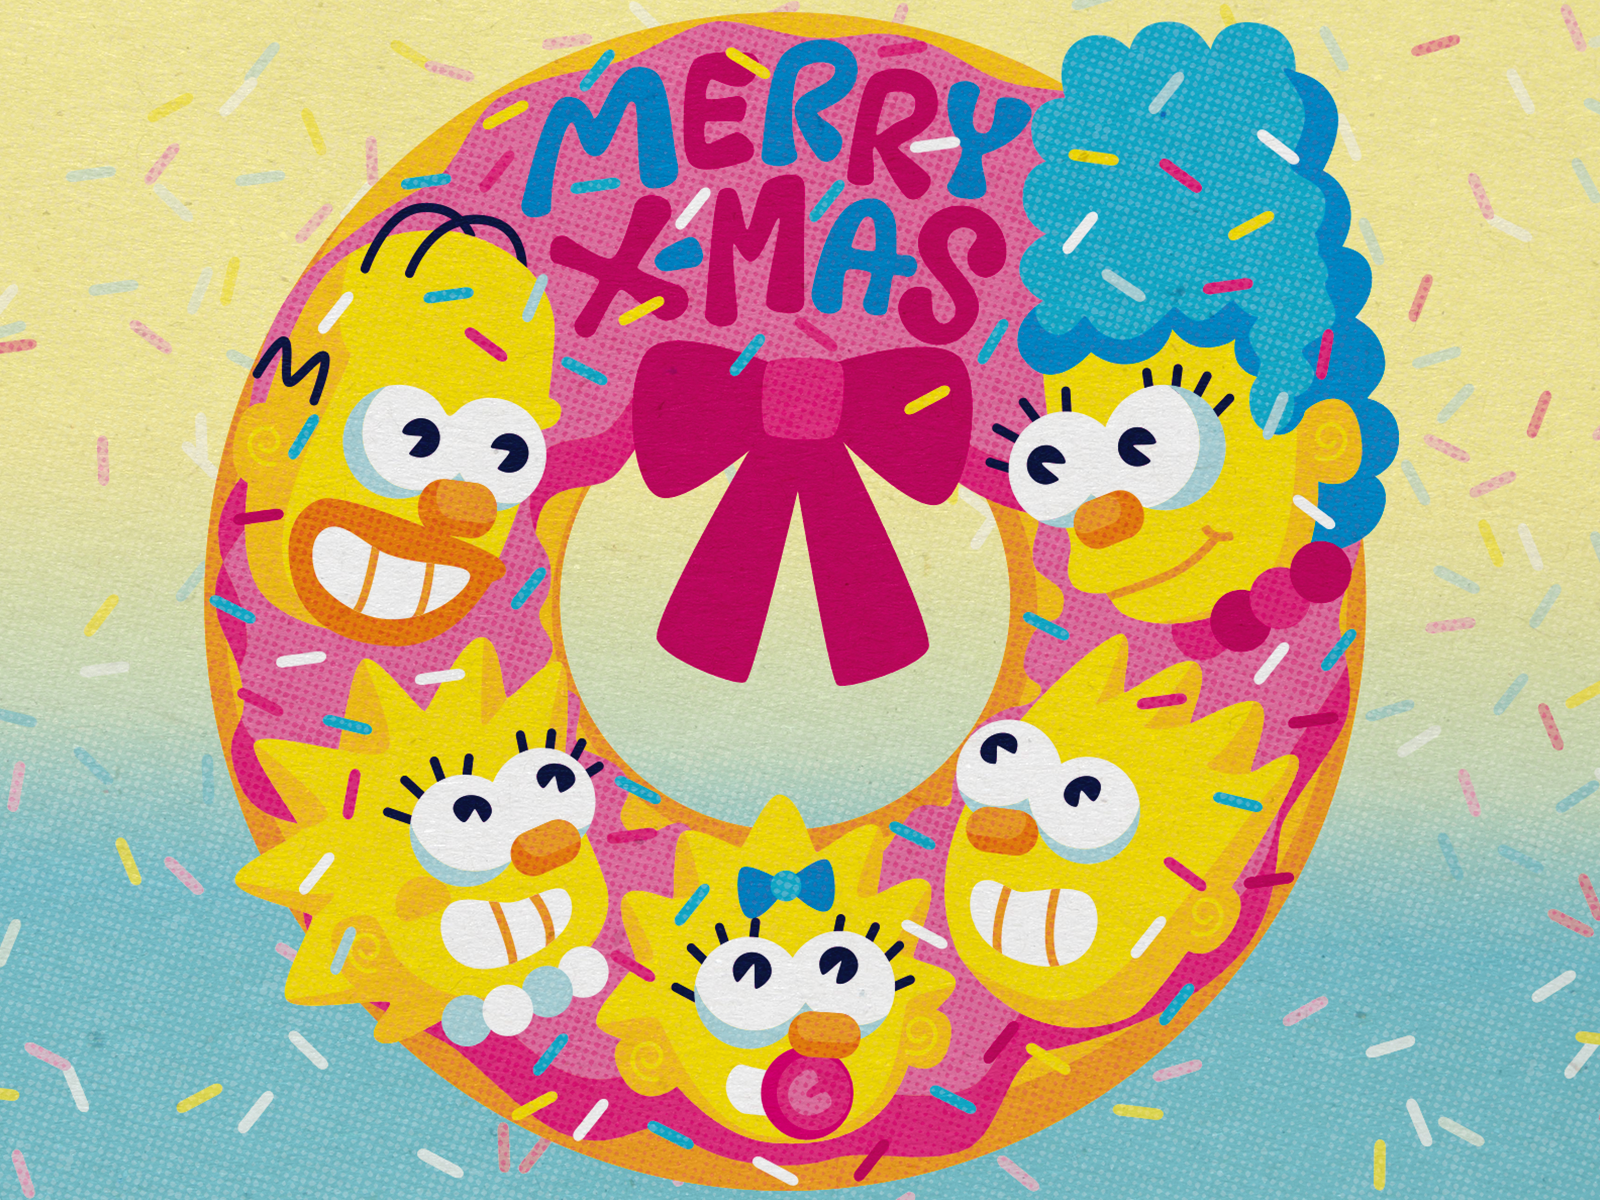 The Simpsons Holiday Card By Inkbyte Studios On Dribbble